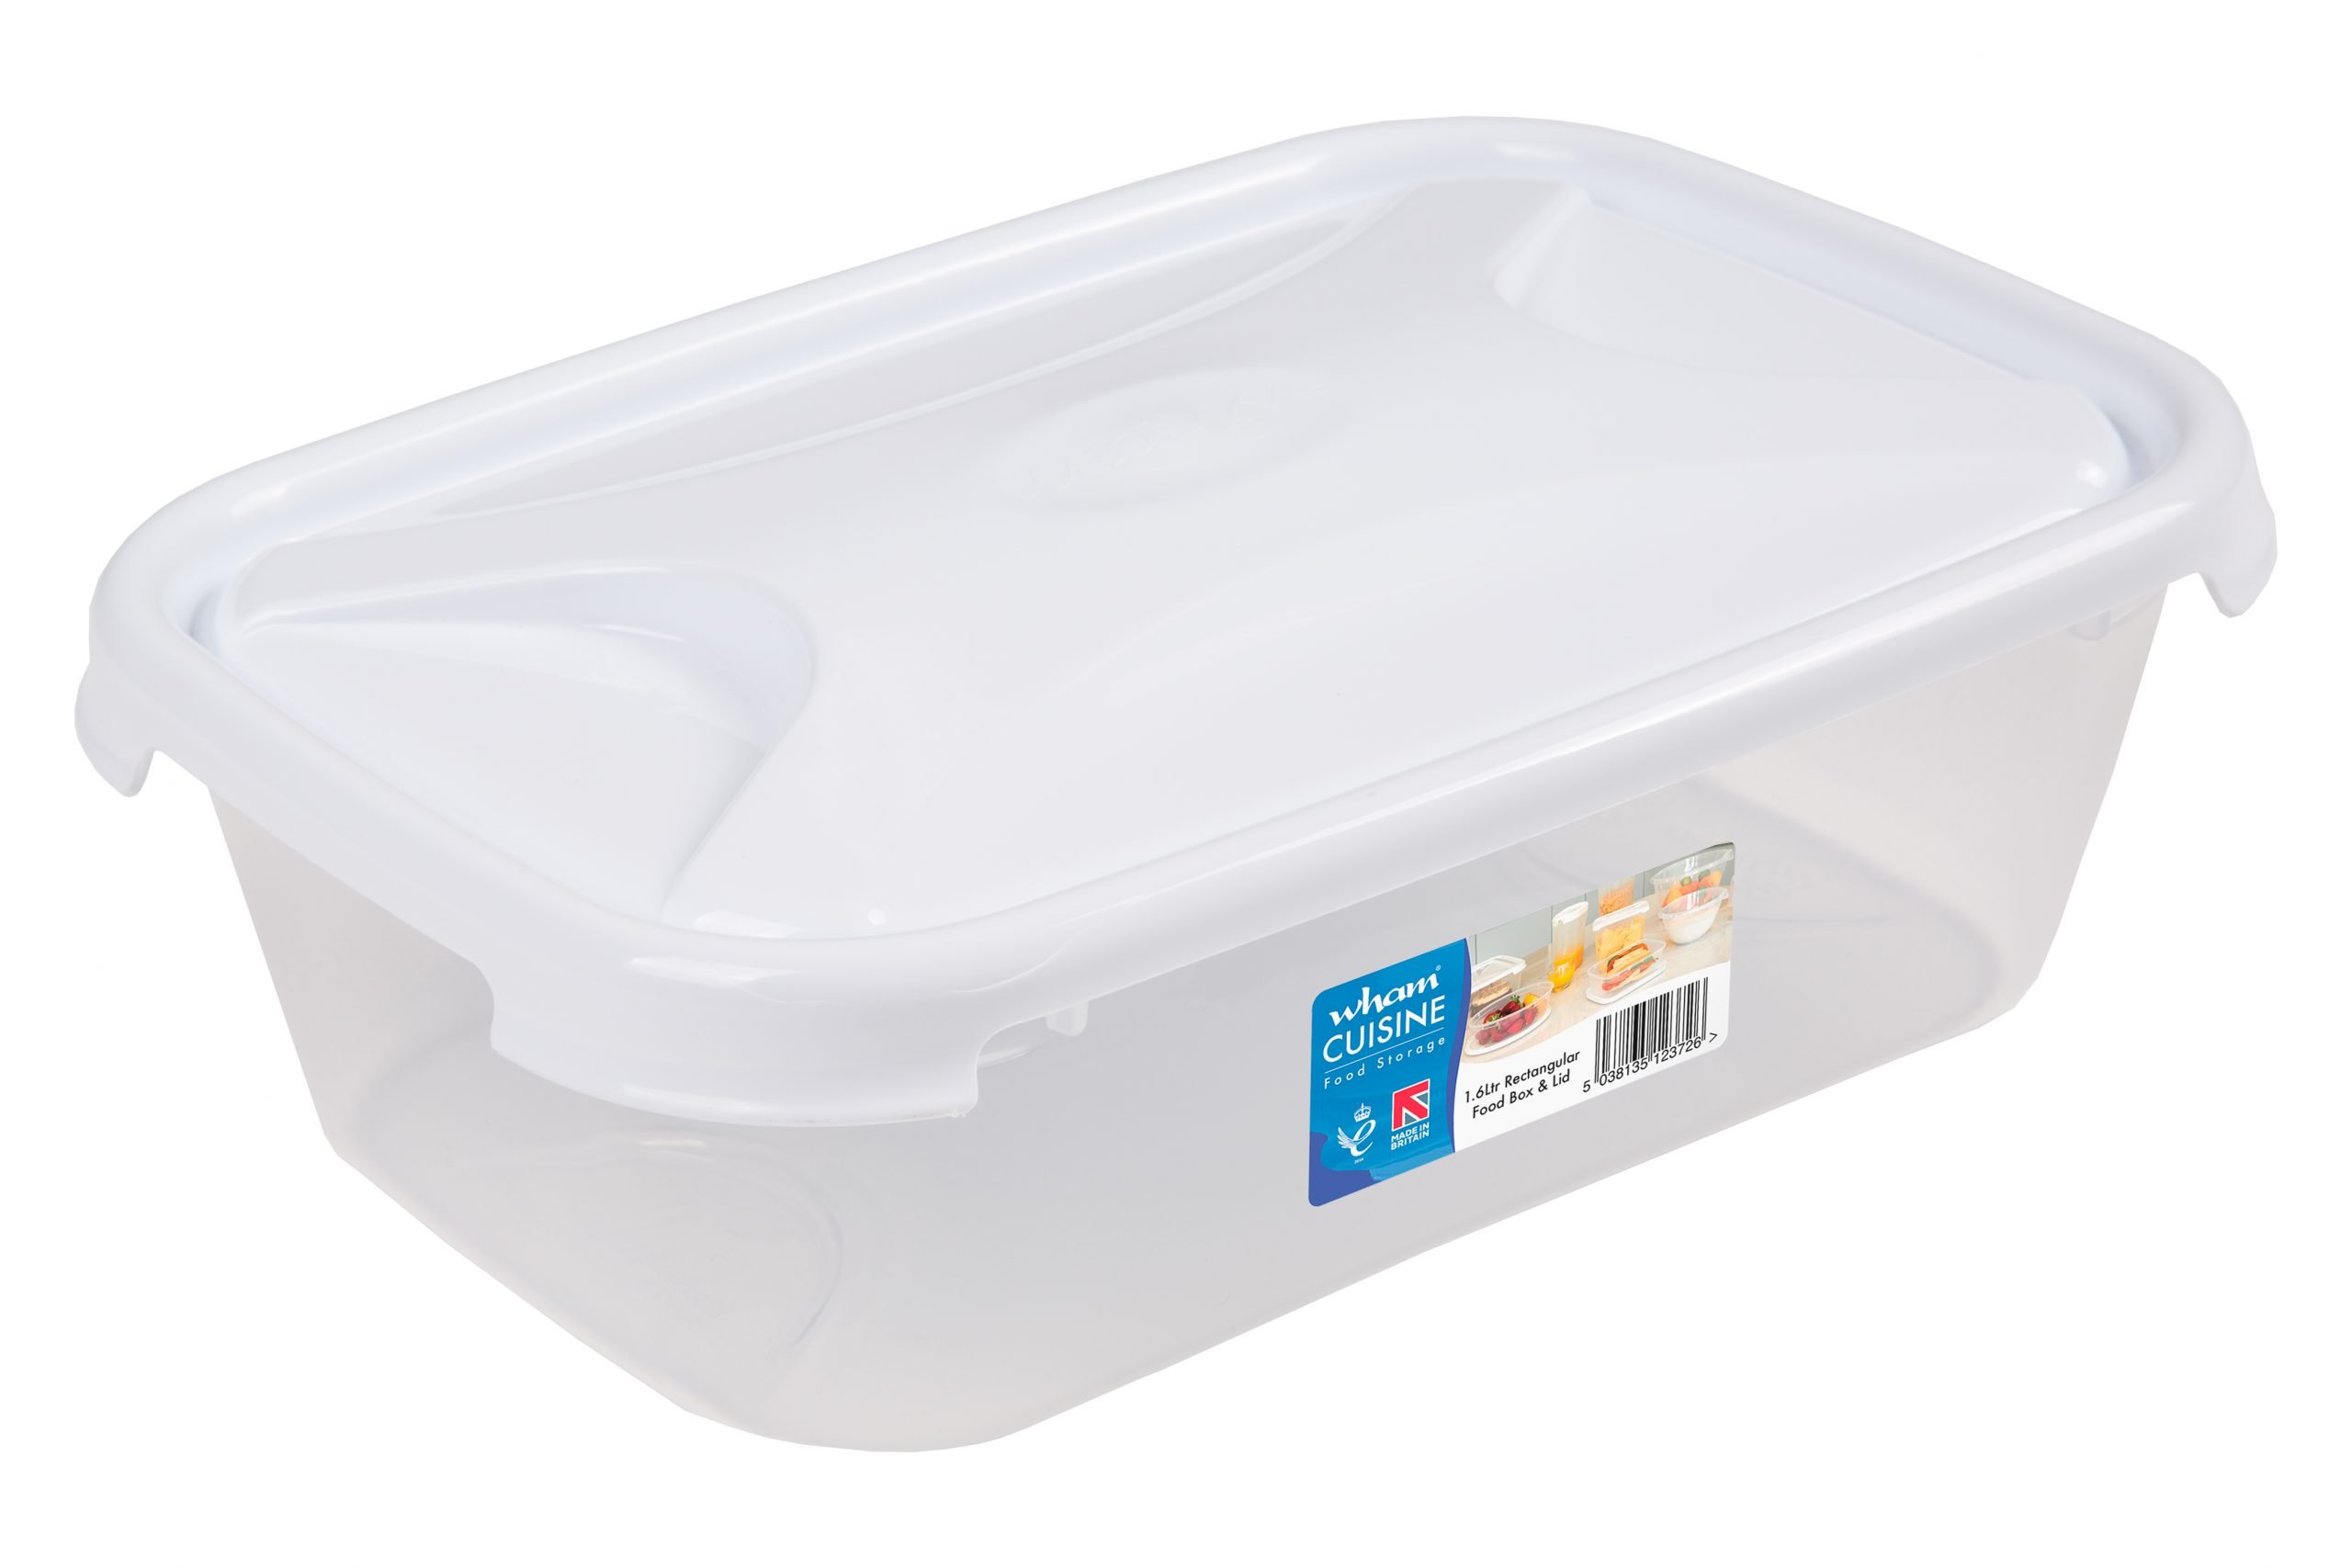 1.6Ltr Cuisine Rectangular Plastic Food Storage Container